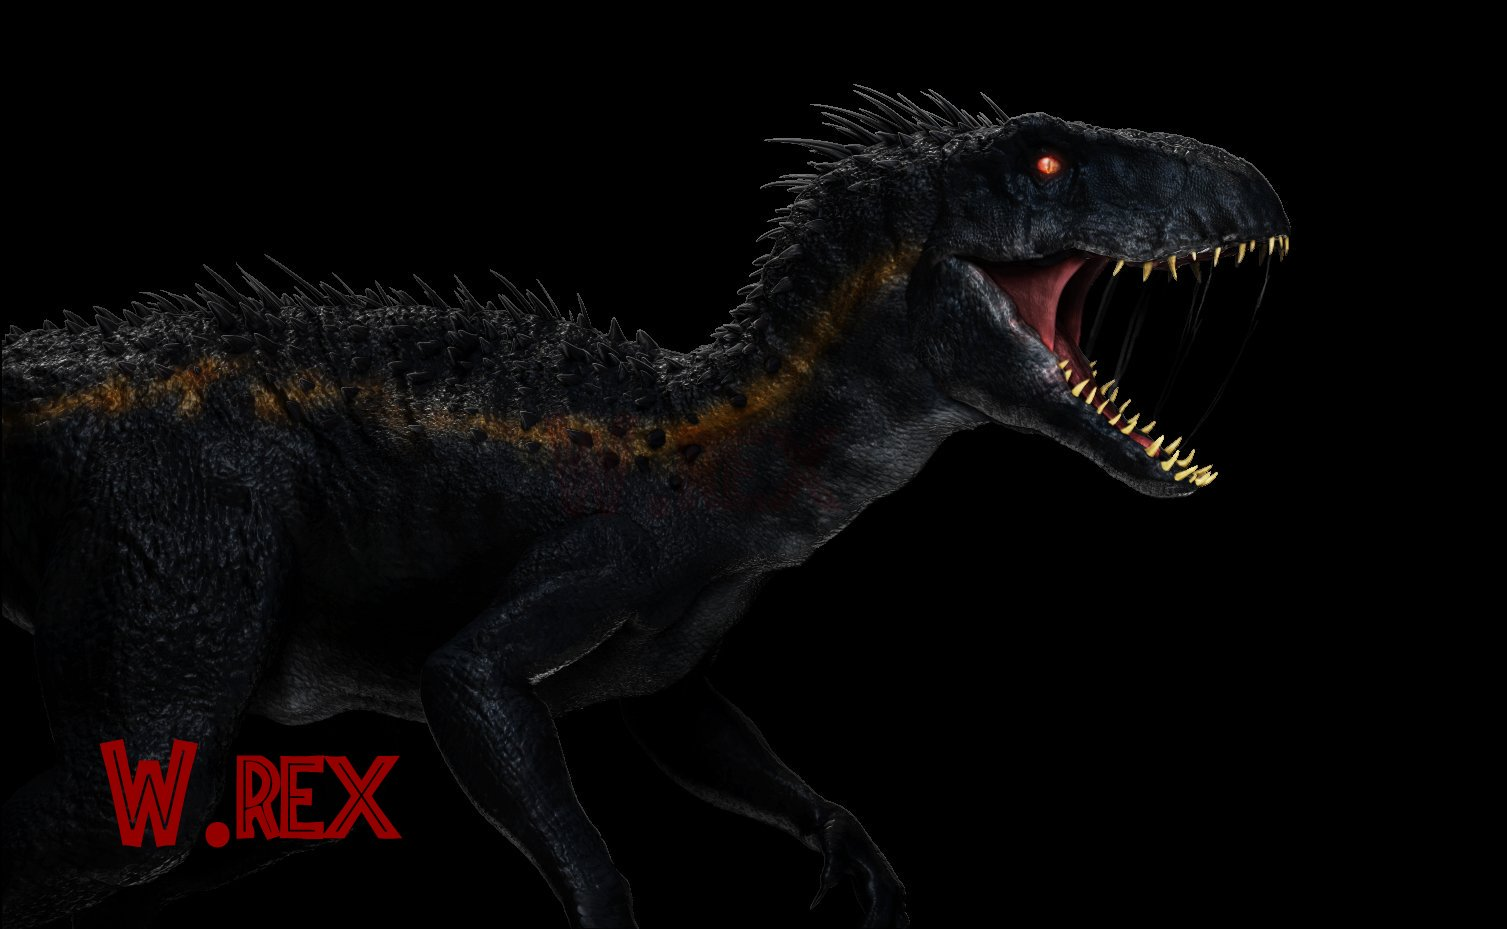 jurassic world fallen kingdom indoraptor w rex hd wallpaper